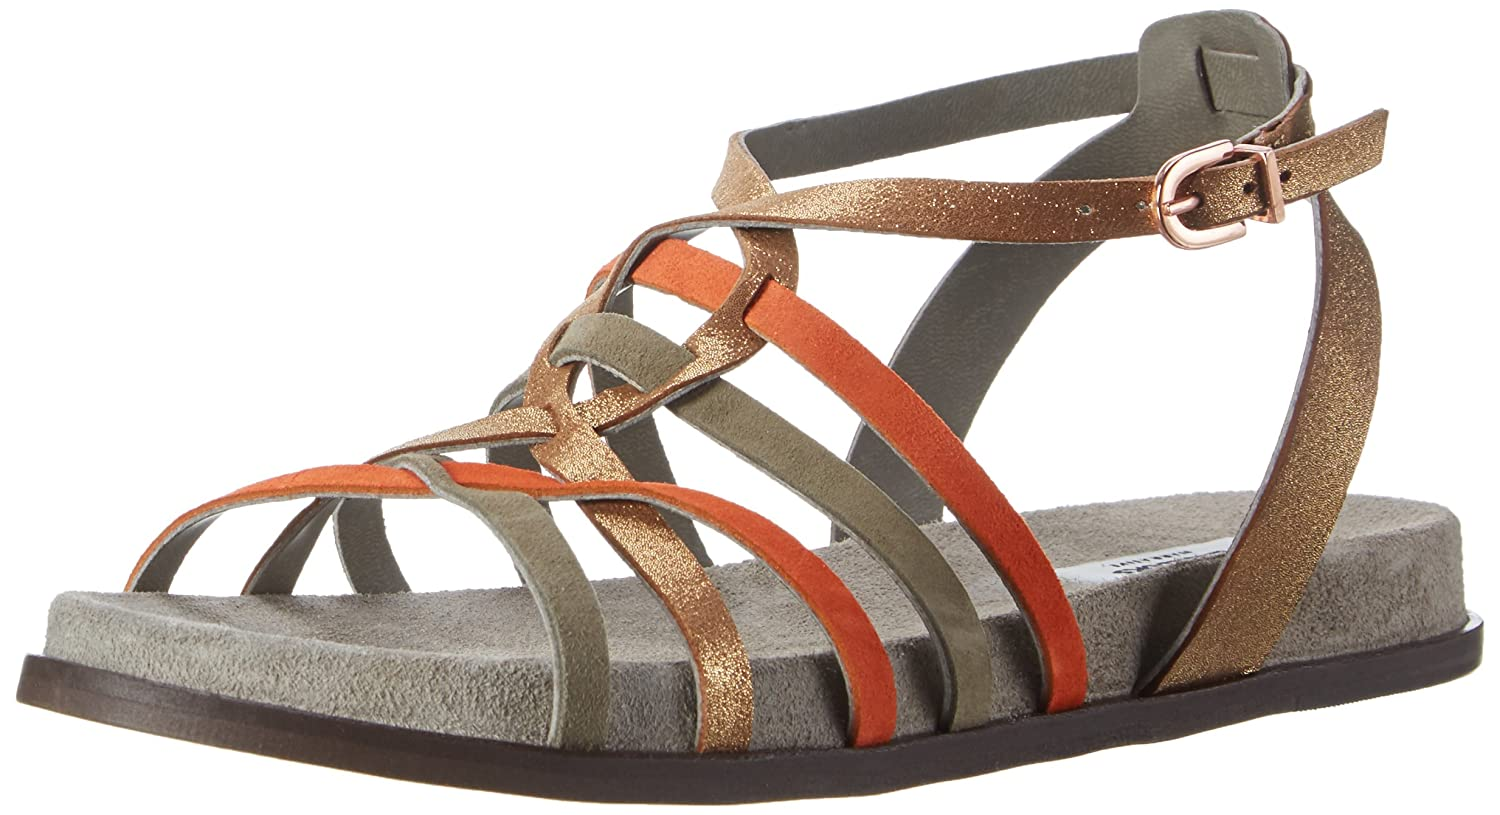 b475730e44b0 Clarks Women s Agean Art Ankle Strap Flat Sandals Multicolored (Multicolour  Lea) 5.5 UK  Buy Online at Low Prices in India - Amazon.in